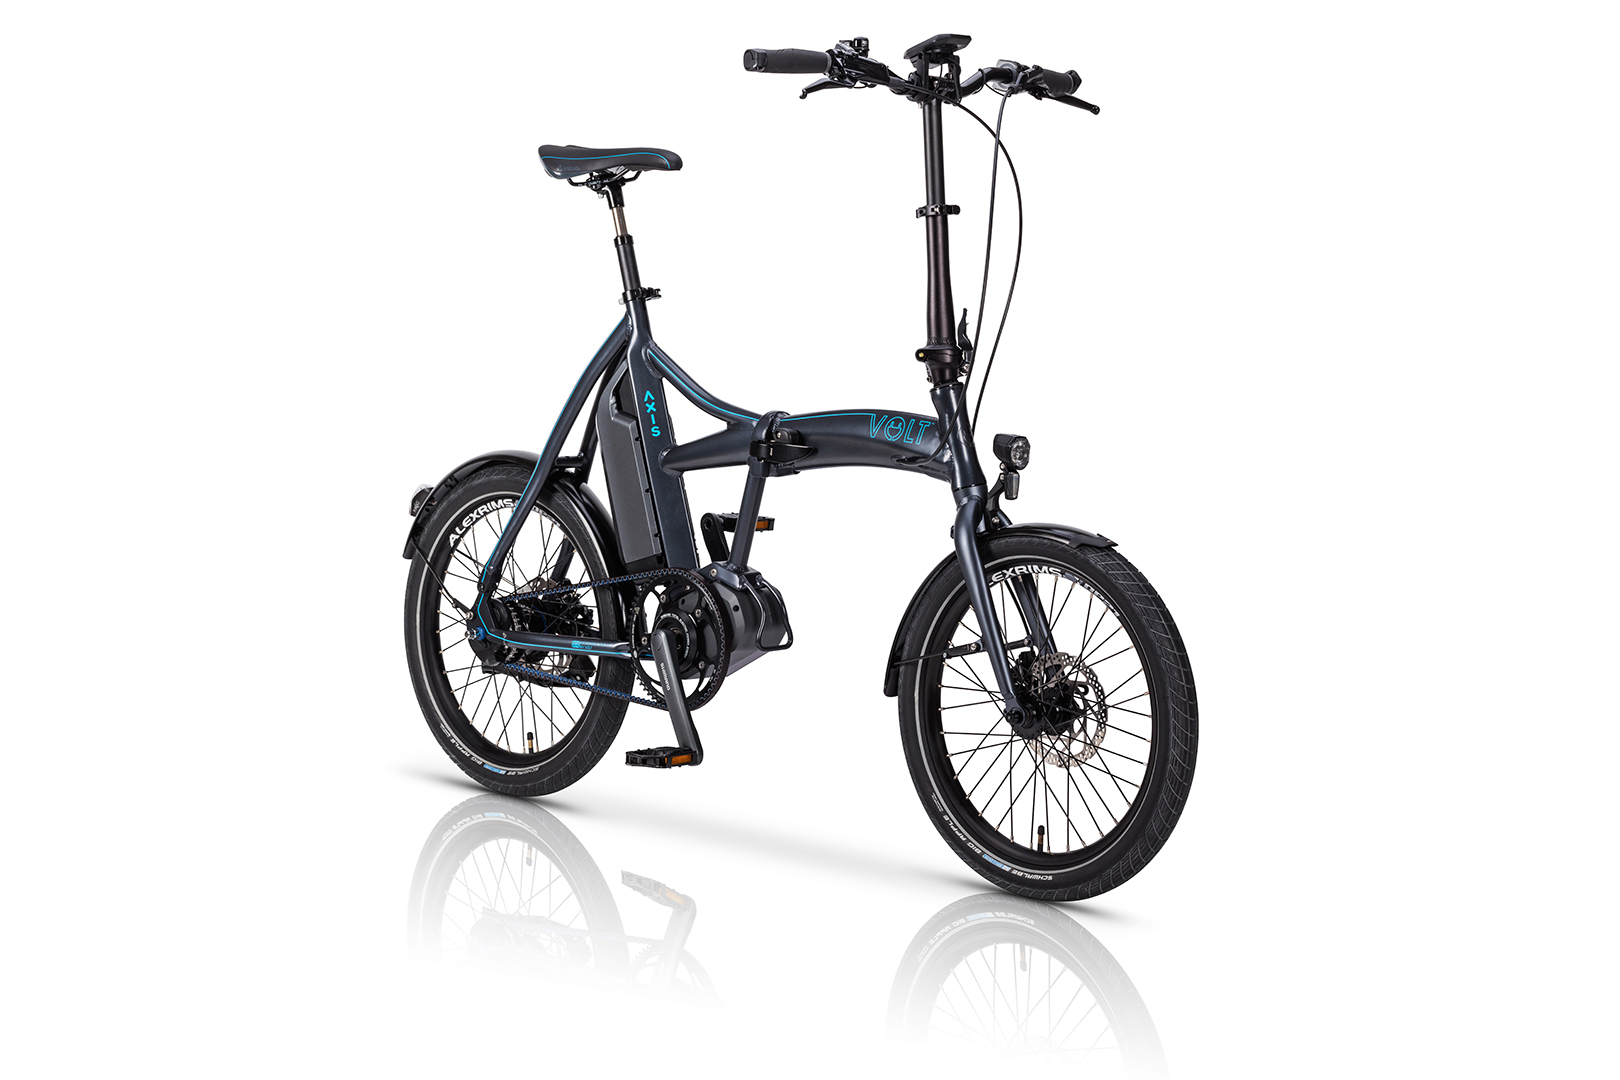 Axis Folding Shimano STEPS e-bike from Volt